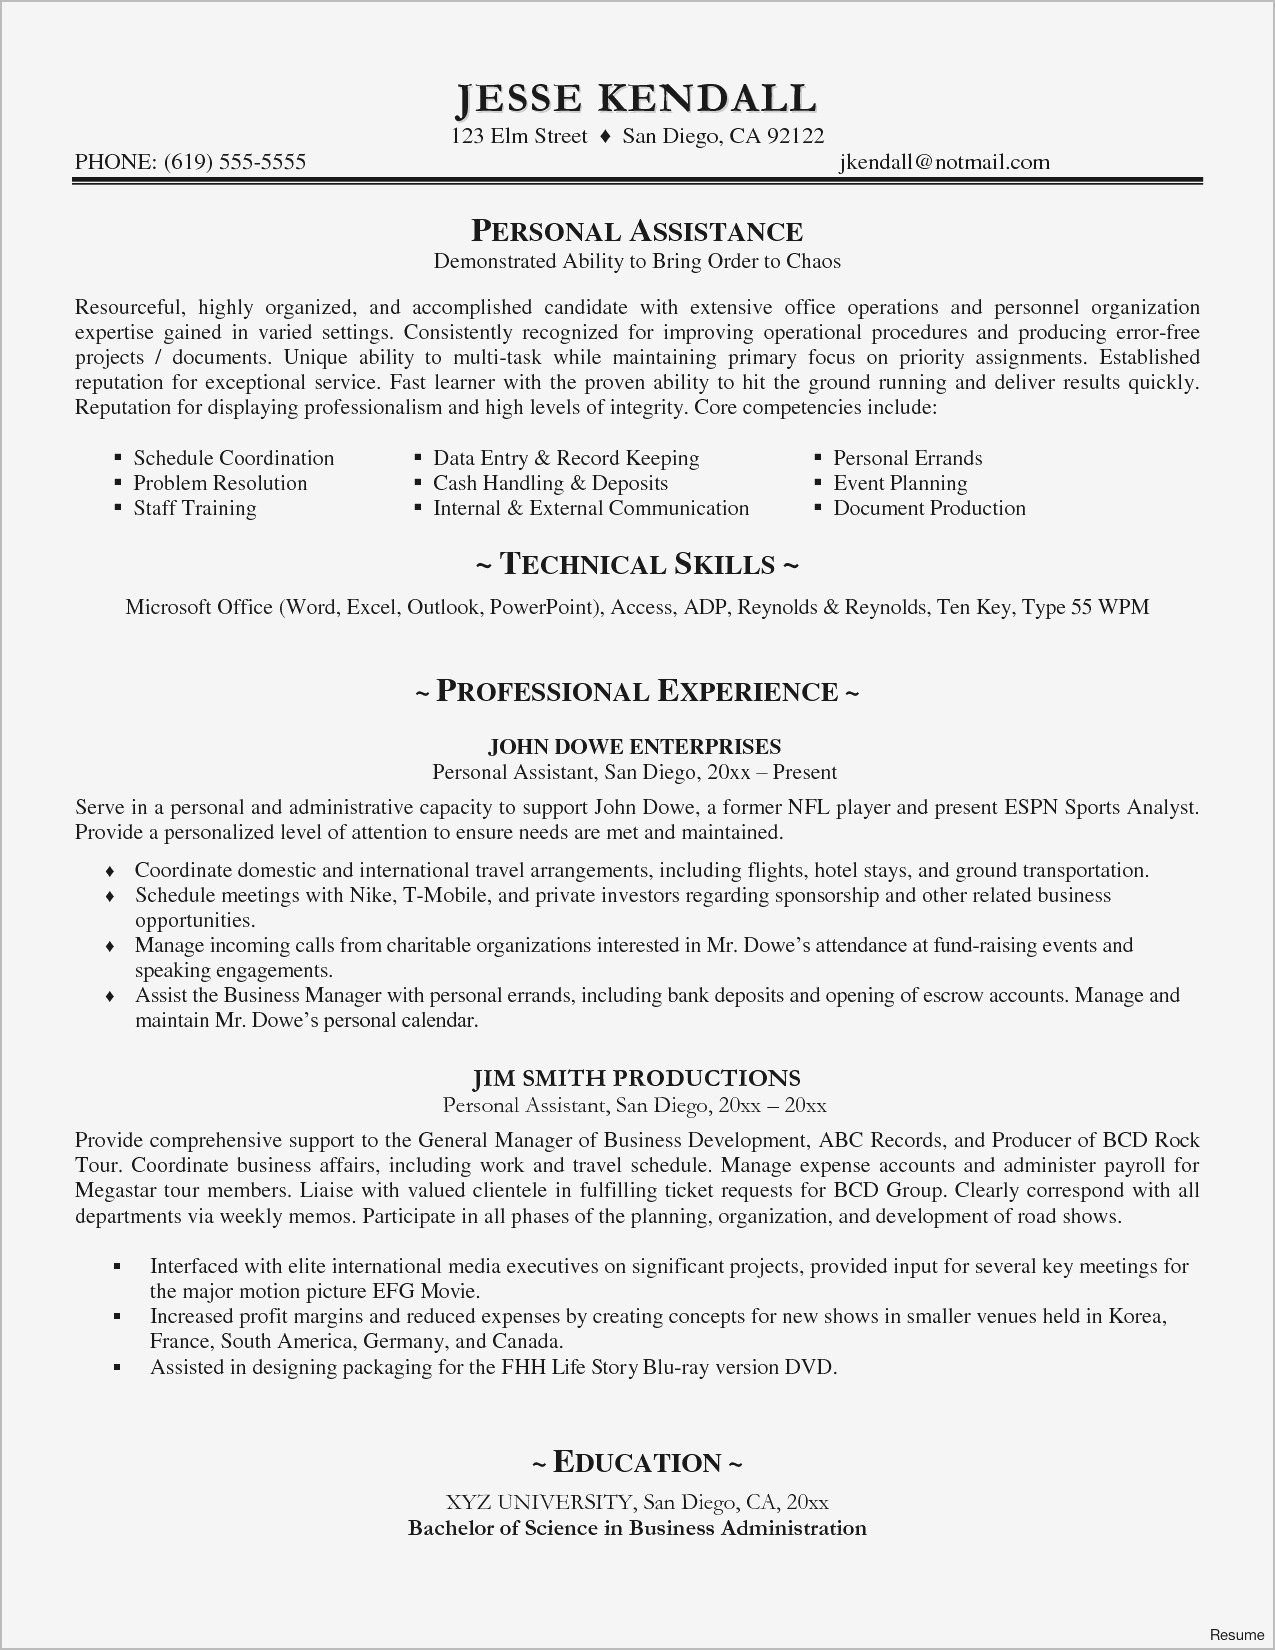 Trainer Resume Example - Personal Trainer Resume New Best Perfect Nursing Resume Awesome